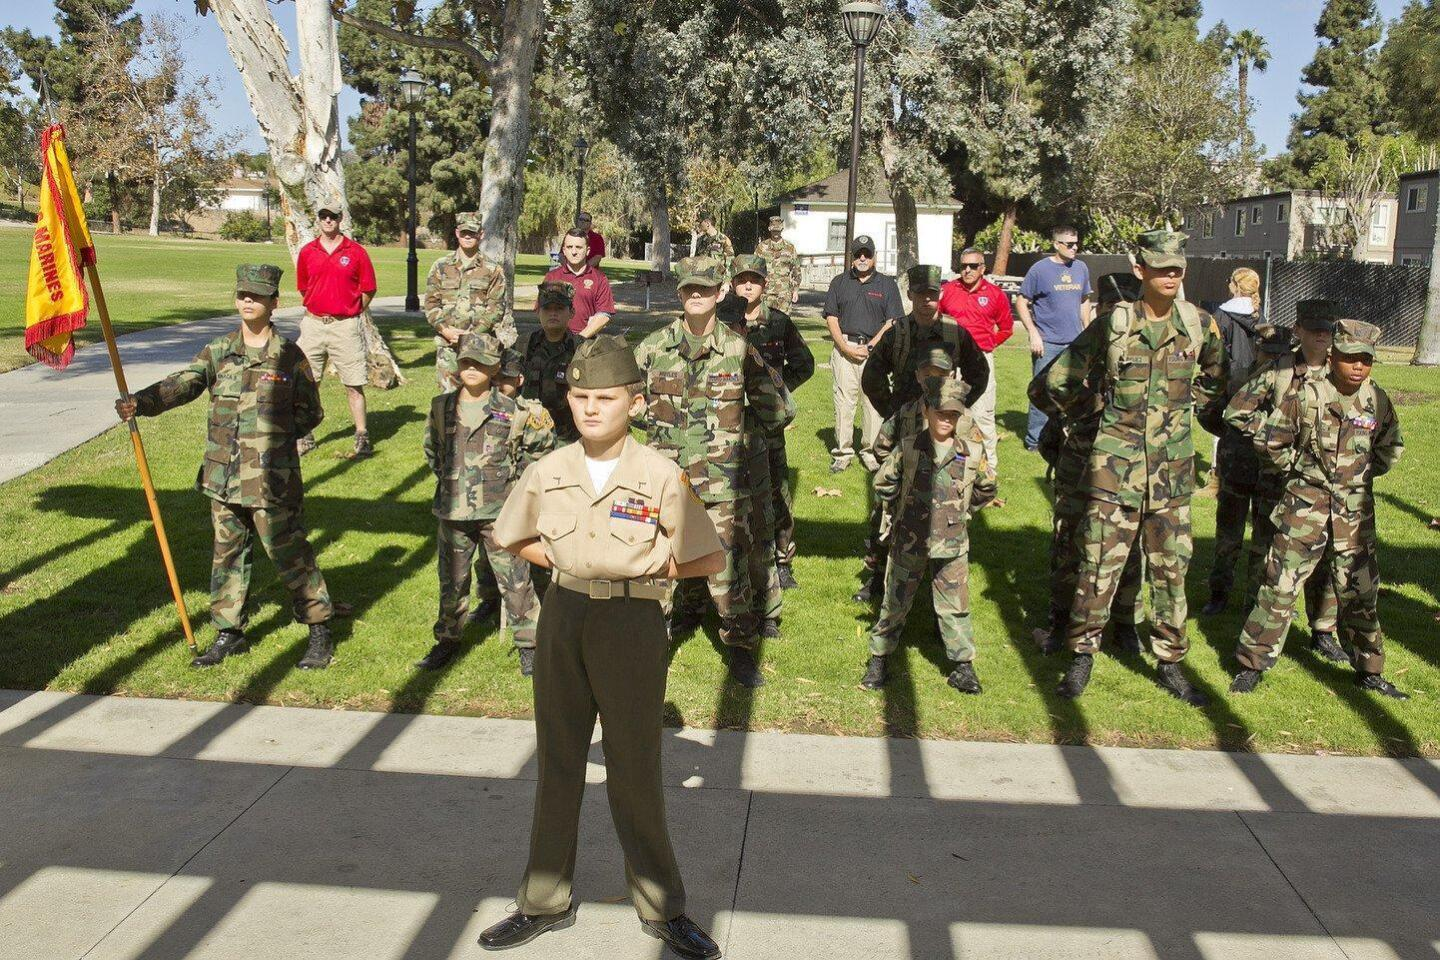 Solana Beach hosts Veterans Day ceremony